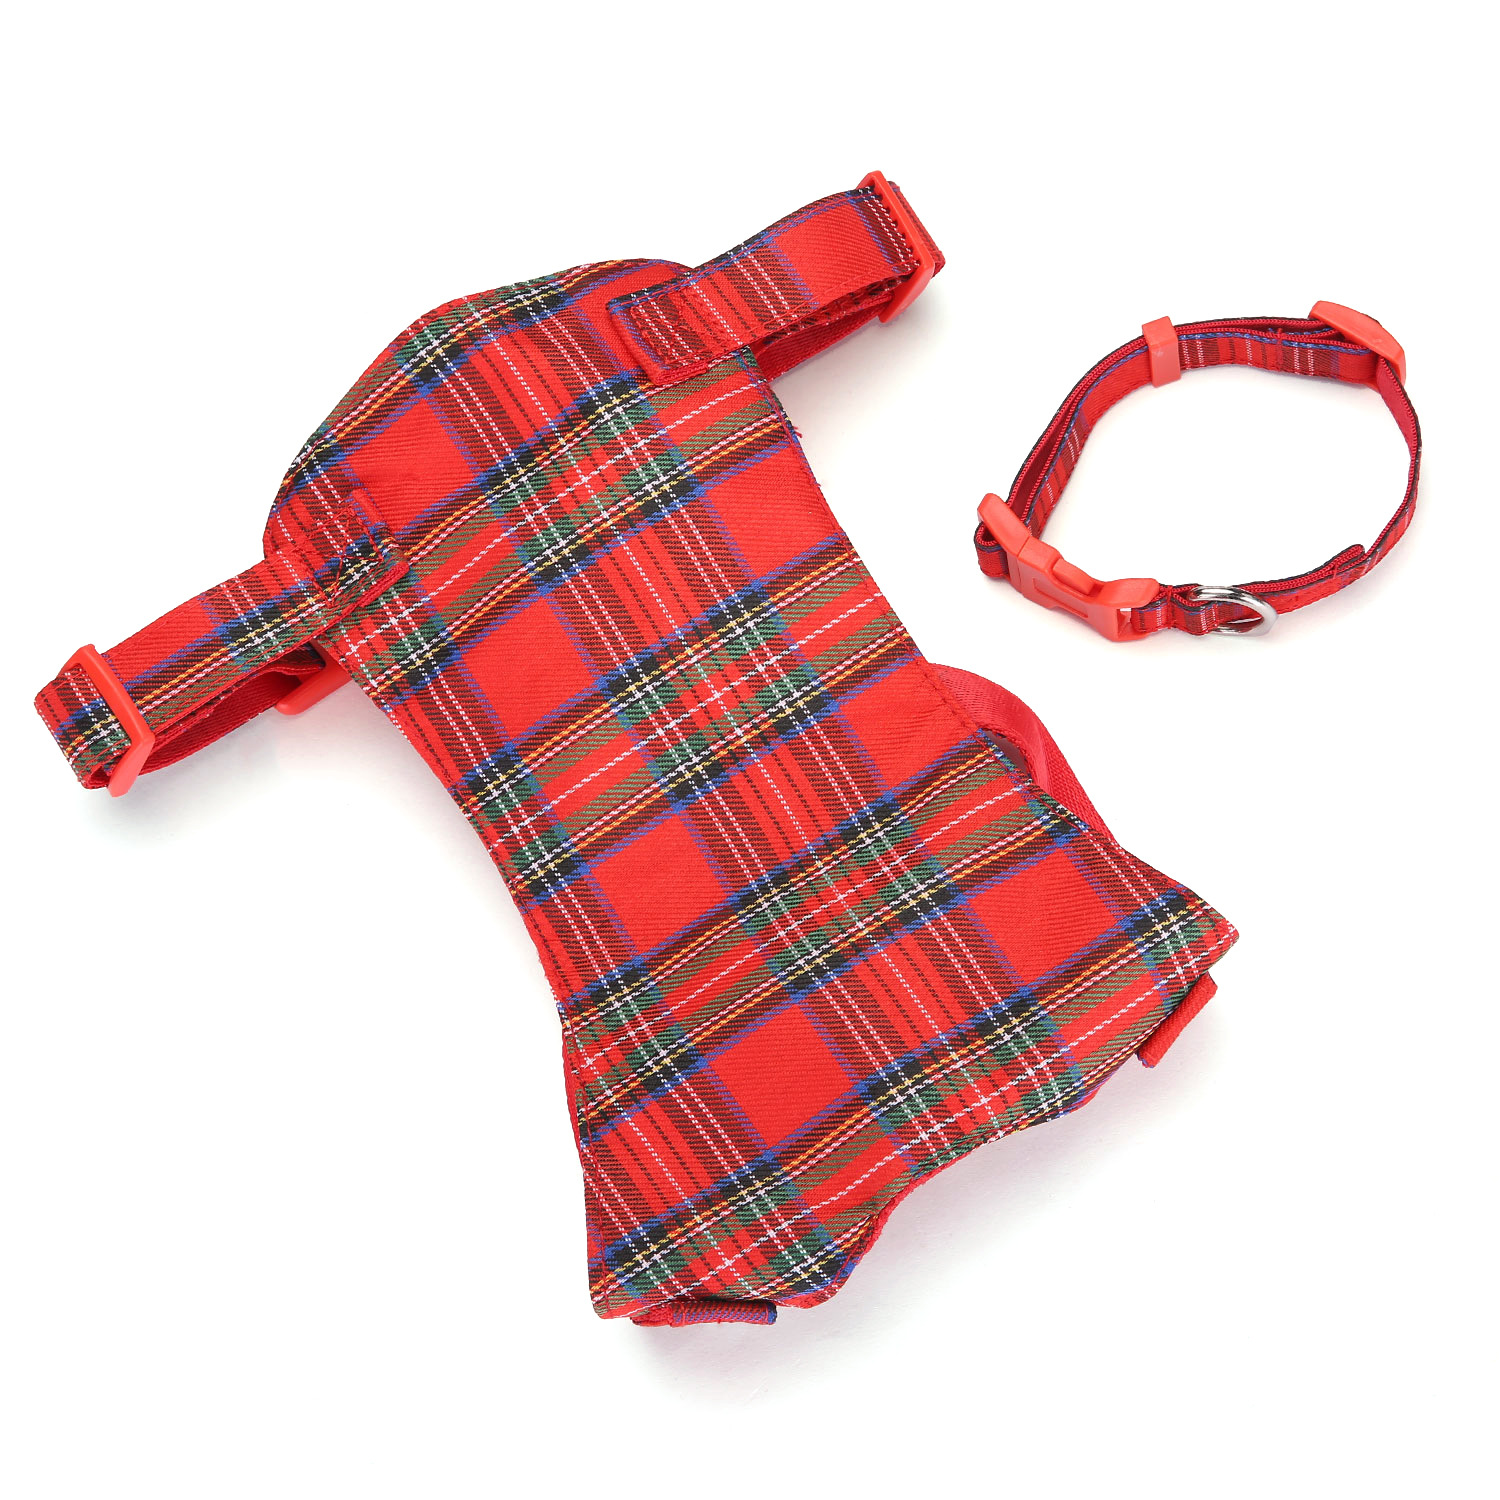 Hot Sales Classic Plaid Pet's Chest-back Distraction Neck Ring Set Adjustable Dog Chest And Back Pet Supplies